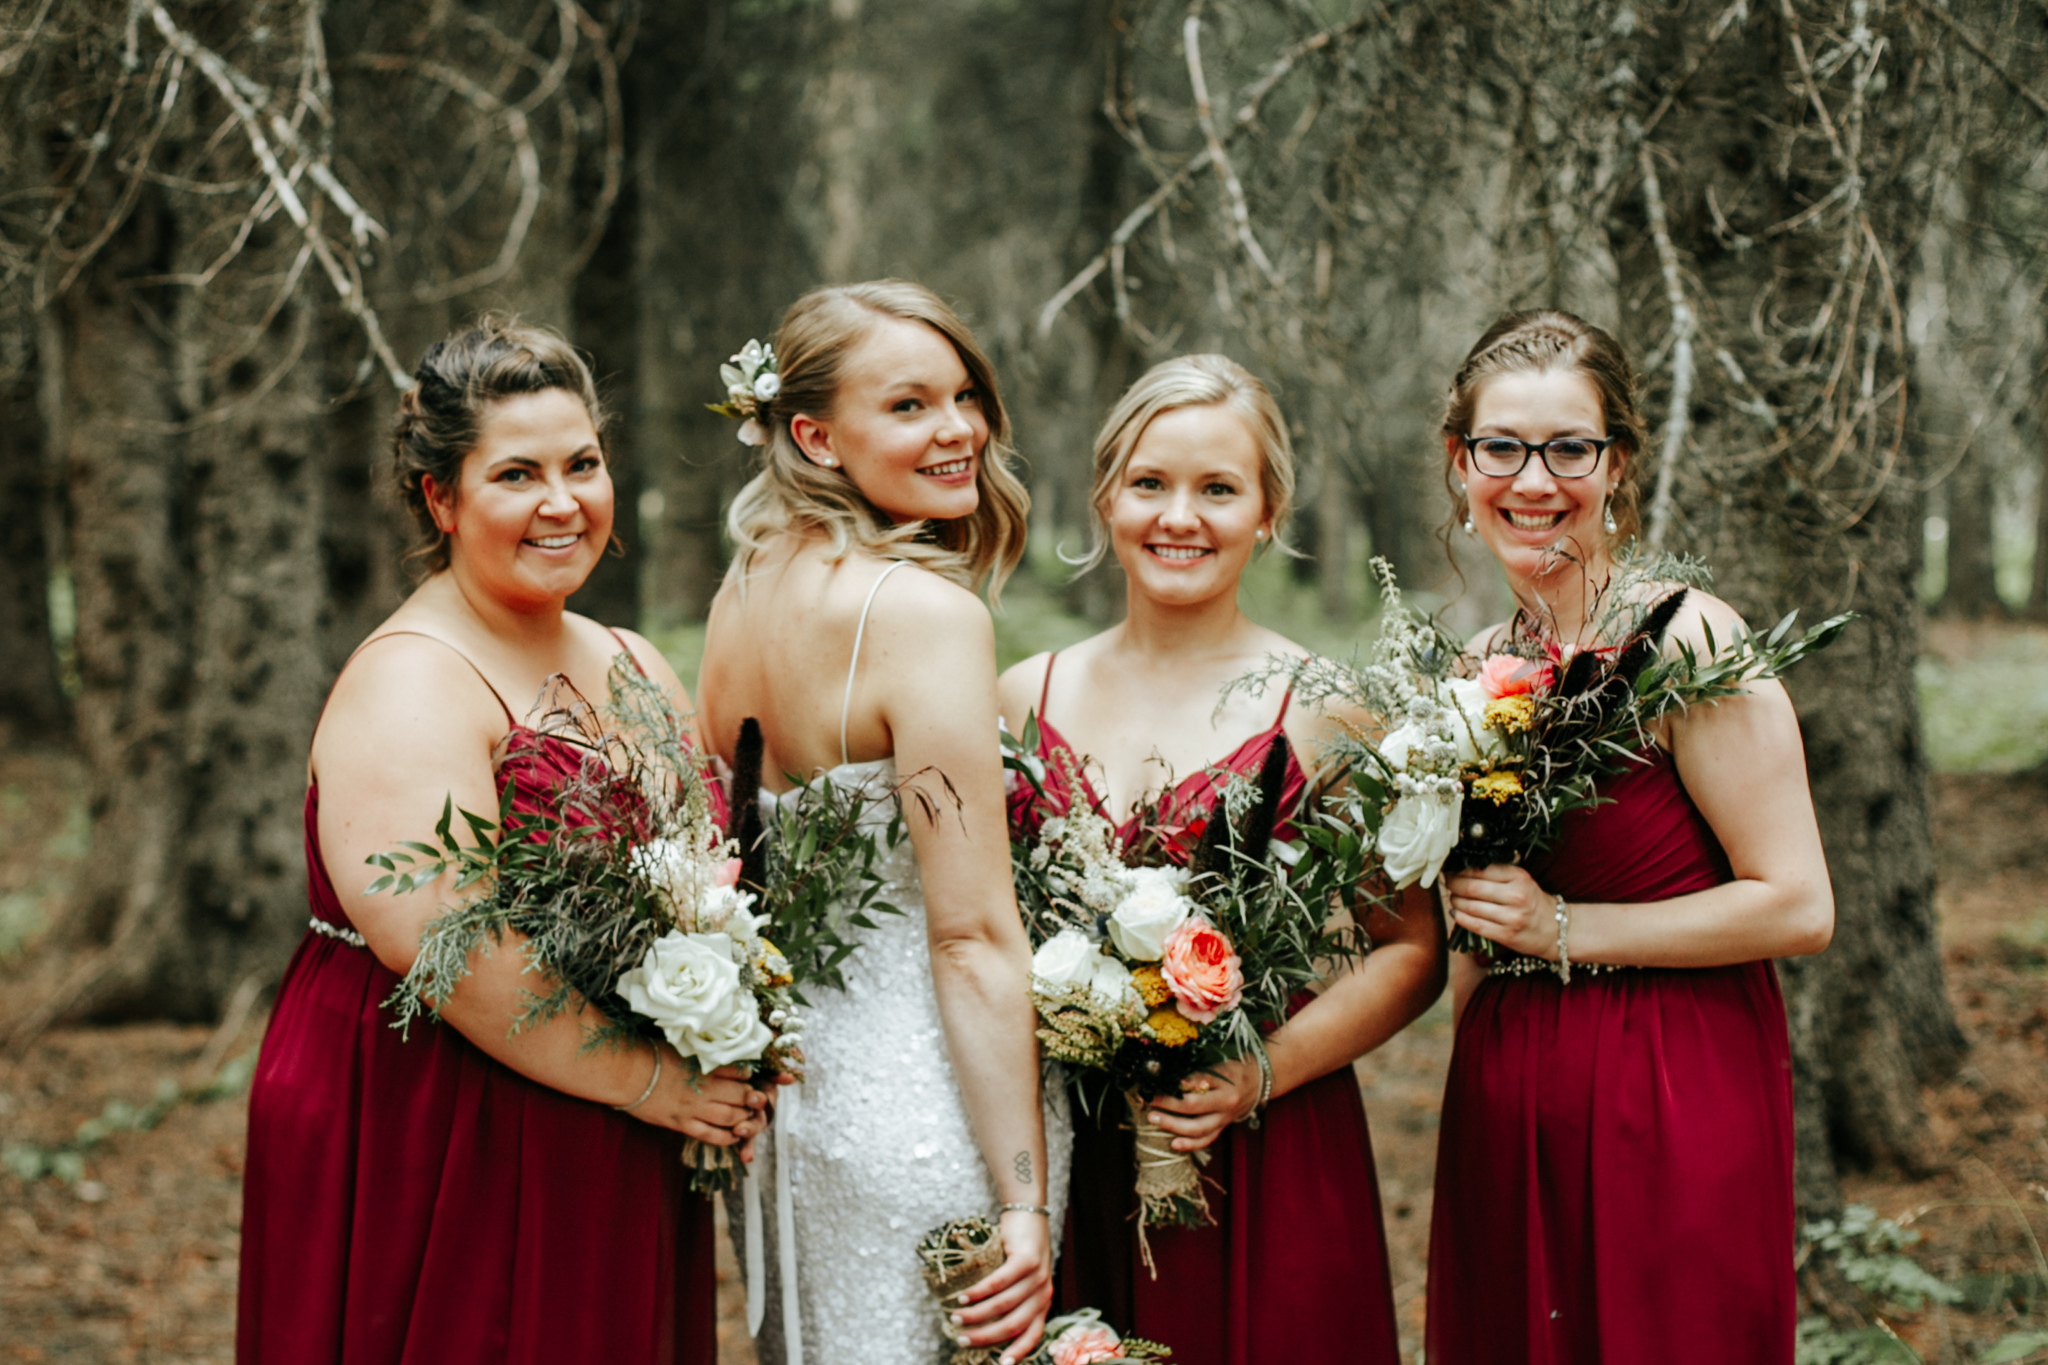 castle-mountain-wedding-photographer-love-and-be-loved-photography-lethbridge-pincher-creek-crowsnest-pass-yannick-rylee-photo-image-picture-108.jpg